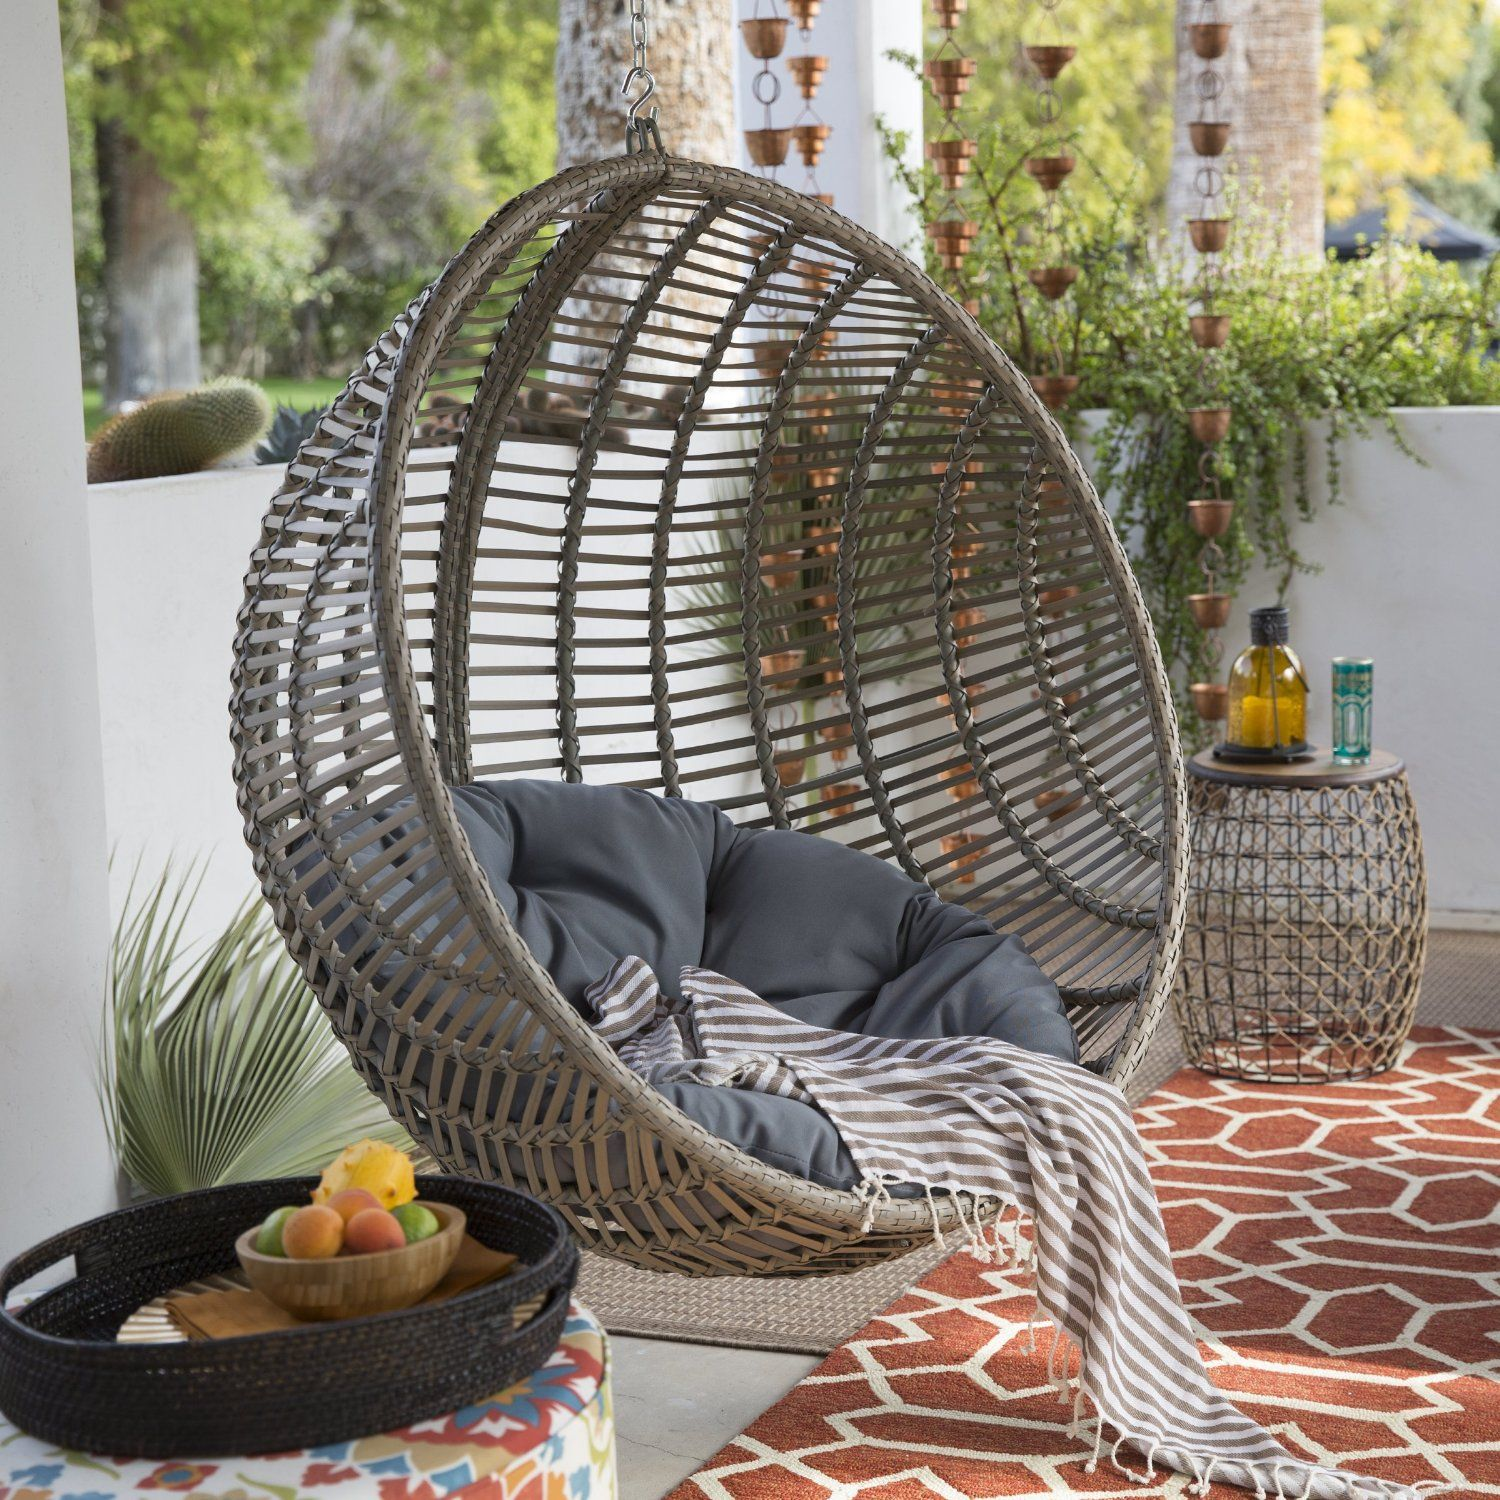 17 types of swing chairs as gifts for family you should check